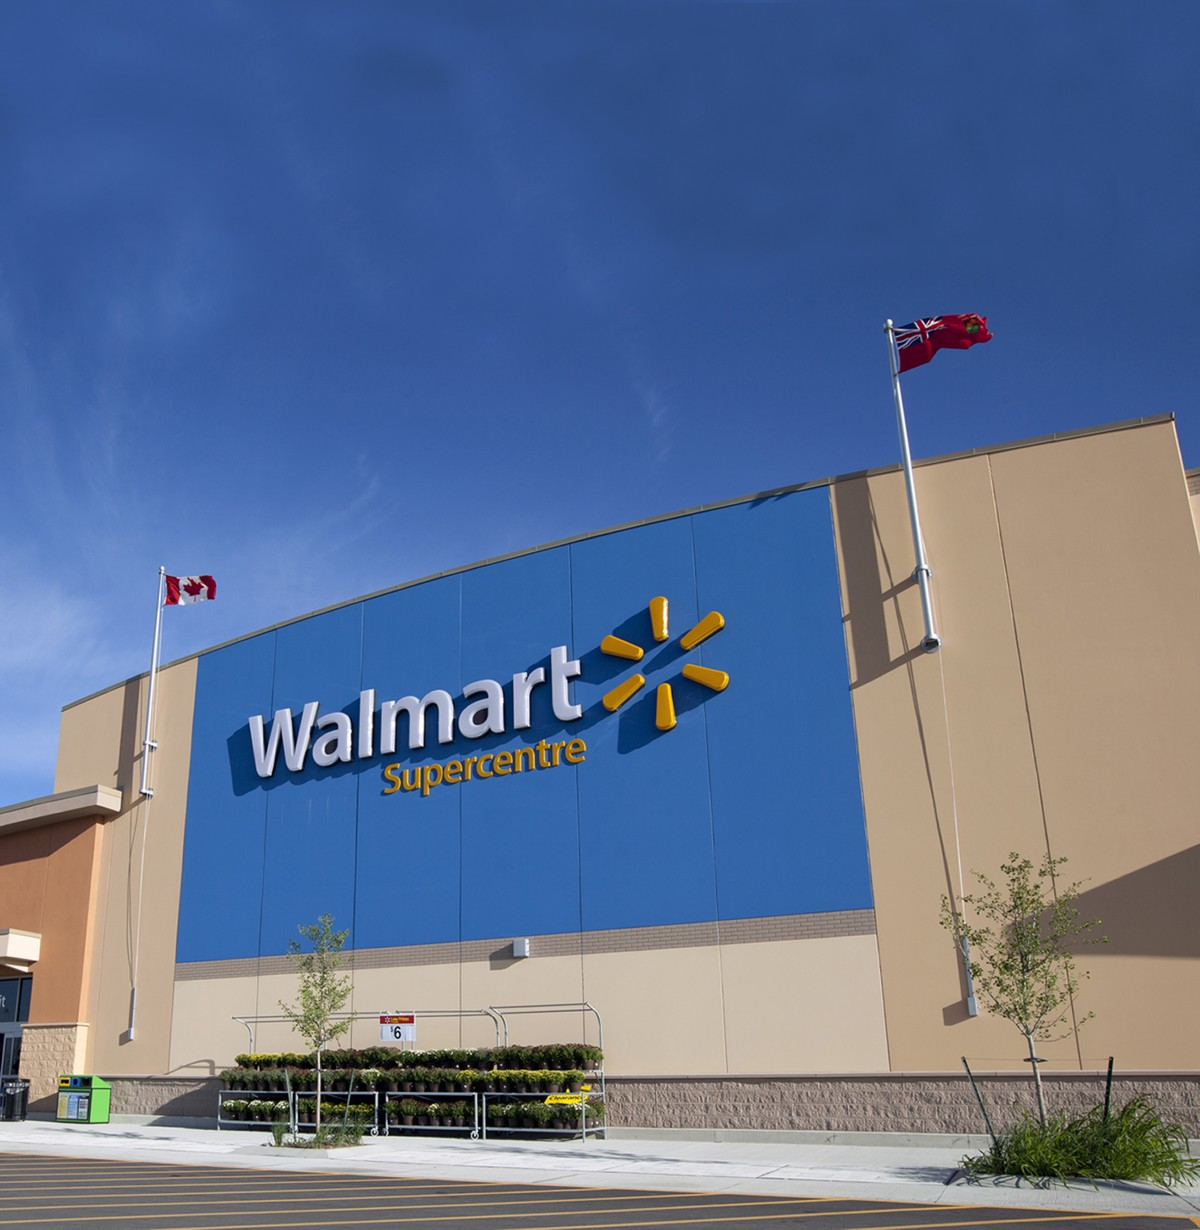 walmart financial resources Wal-mart was the biggest company in the world with sales at a quarter of a trillion and over 13 million employees, it was the biggest retailing success ever a lot of wal-mart's success was attributed to the strong and pervasive culture at the company, which was developed and nurtured by founder sam walton.